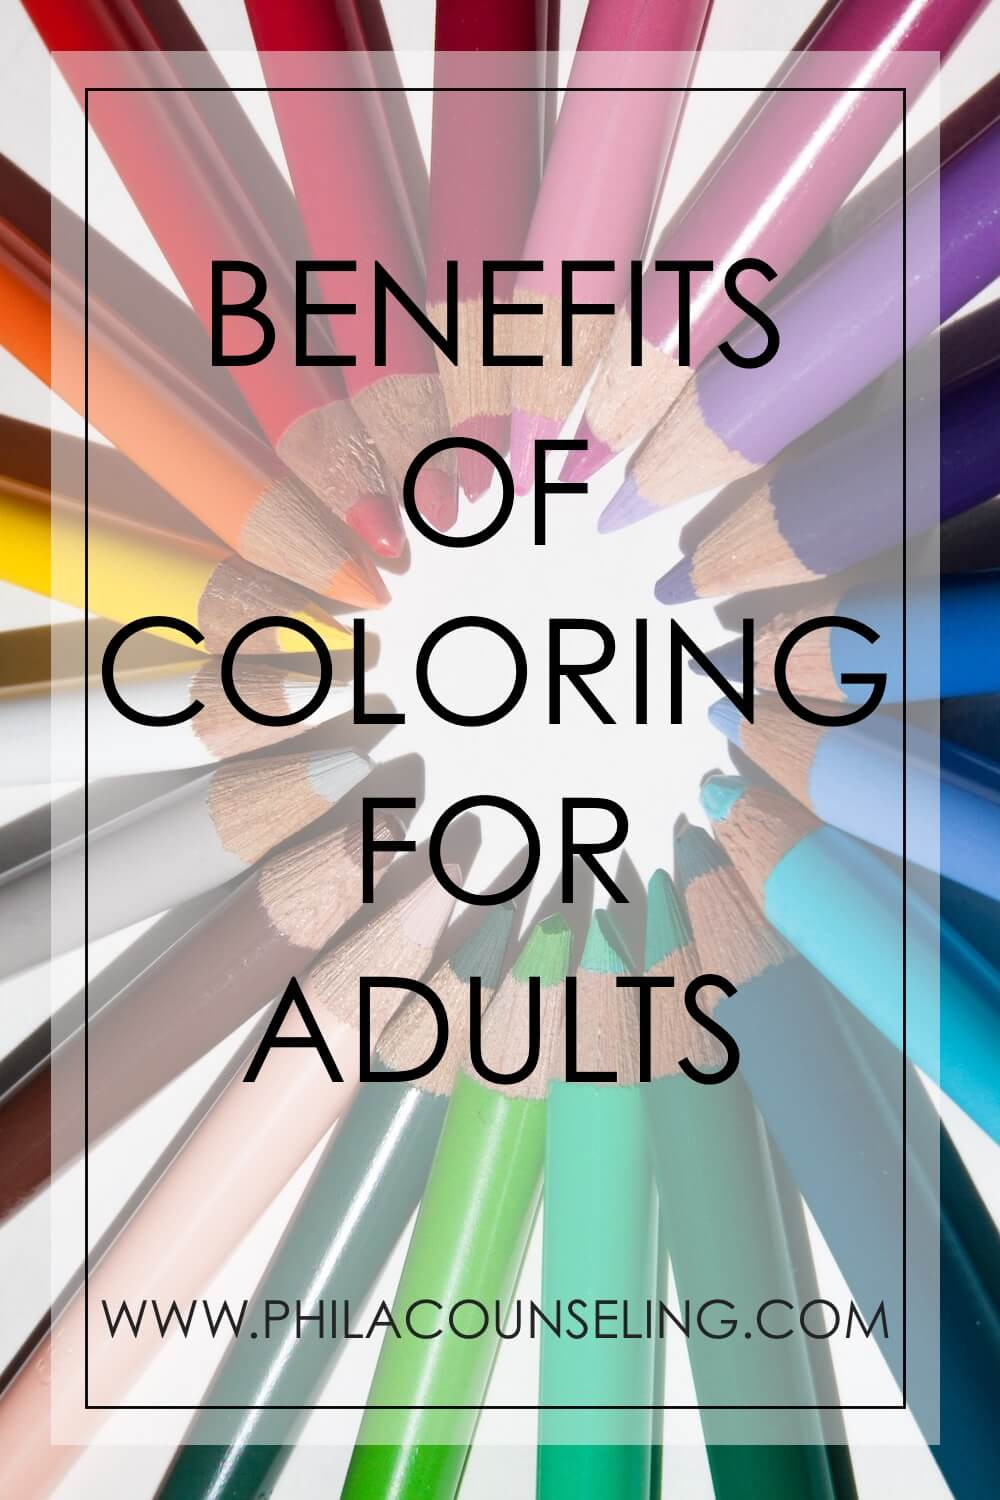 BENEFITS OF COLORING FOR ADULTS